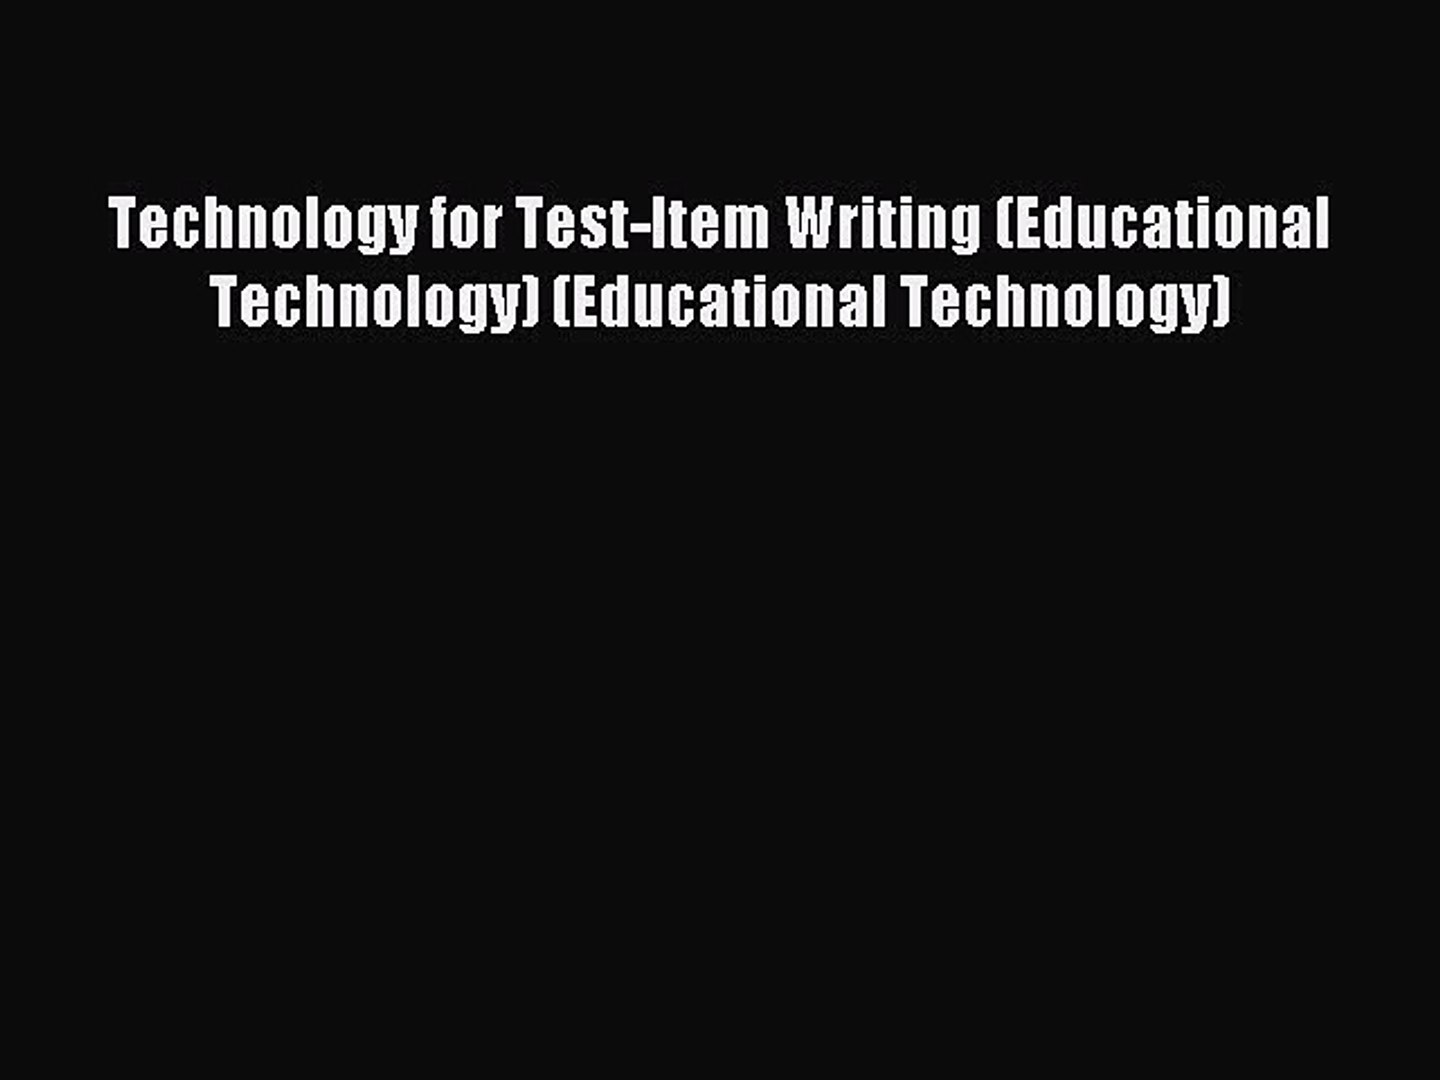 Download Technology for Test-Item Writing (Educational Technology) (Educational Technology)